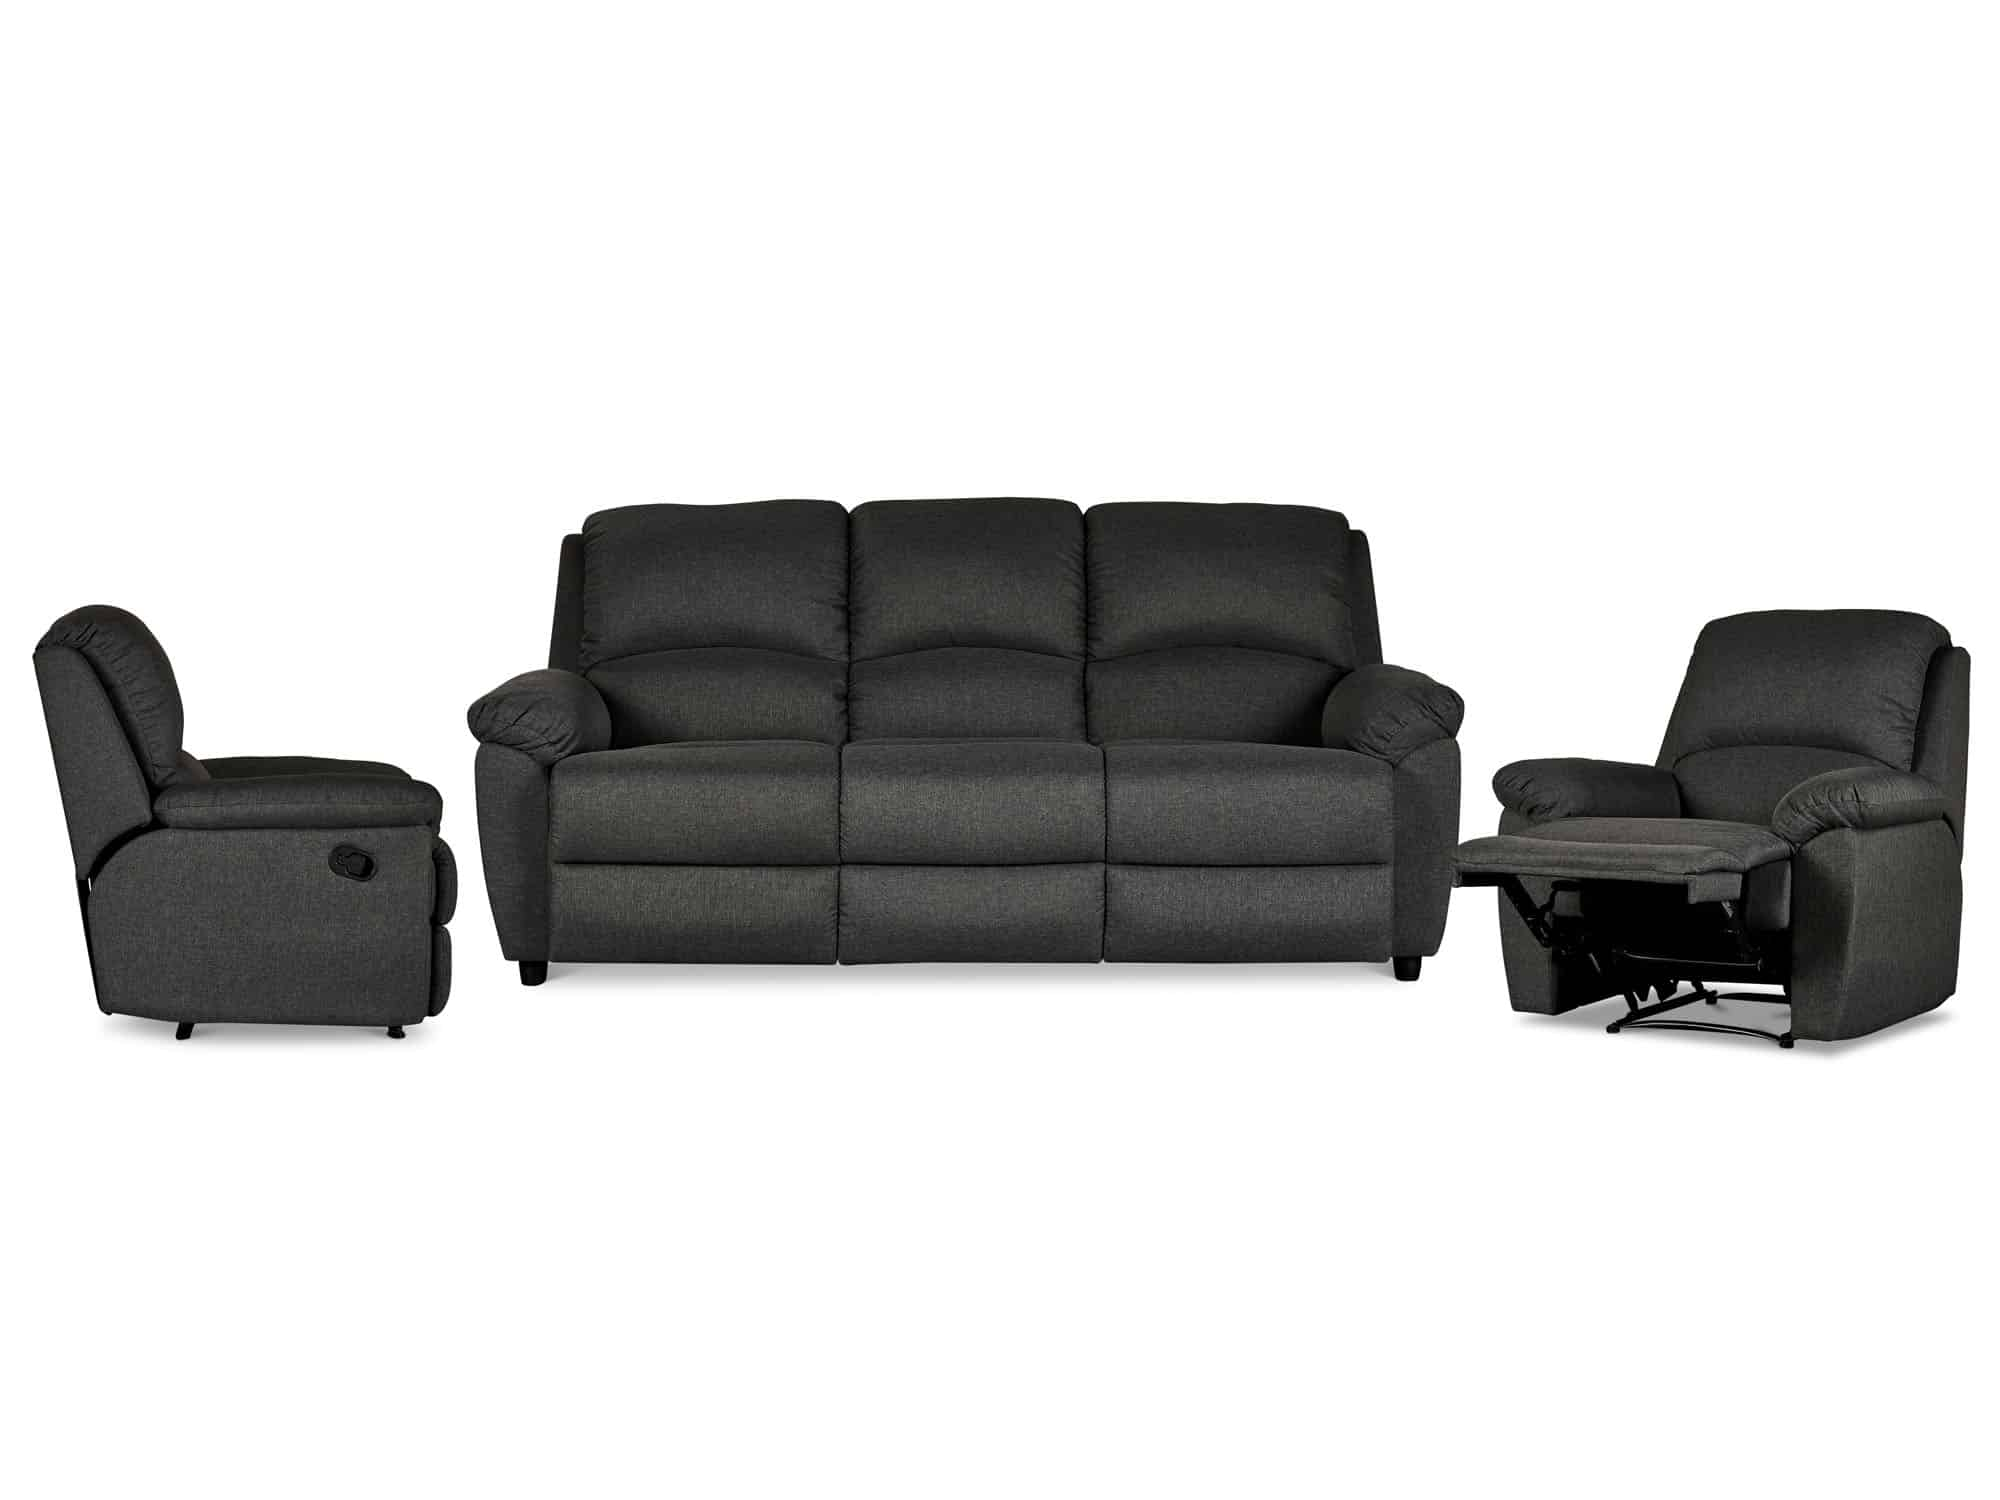 Mirage  sc 1 st  Big Save Furniture : 3 seater recliner lounge - islam-shia.org